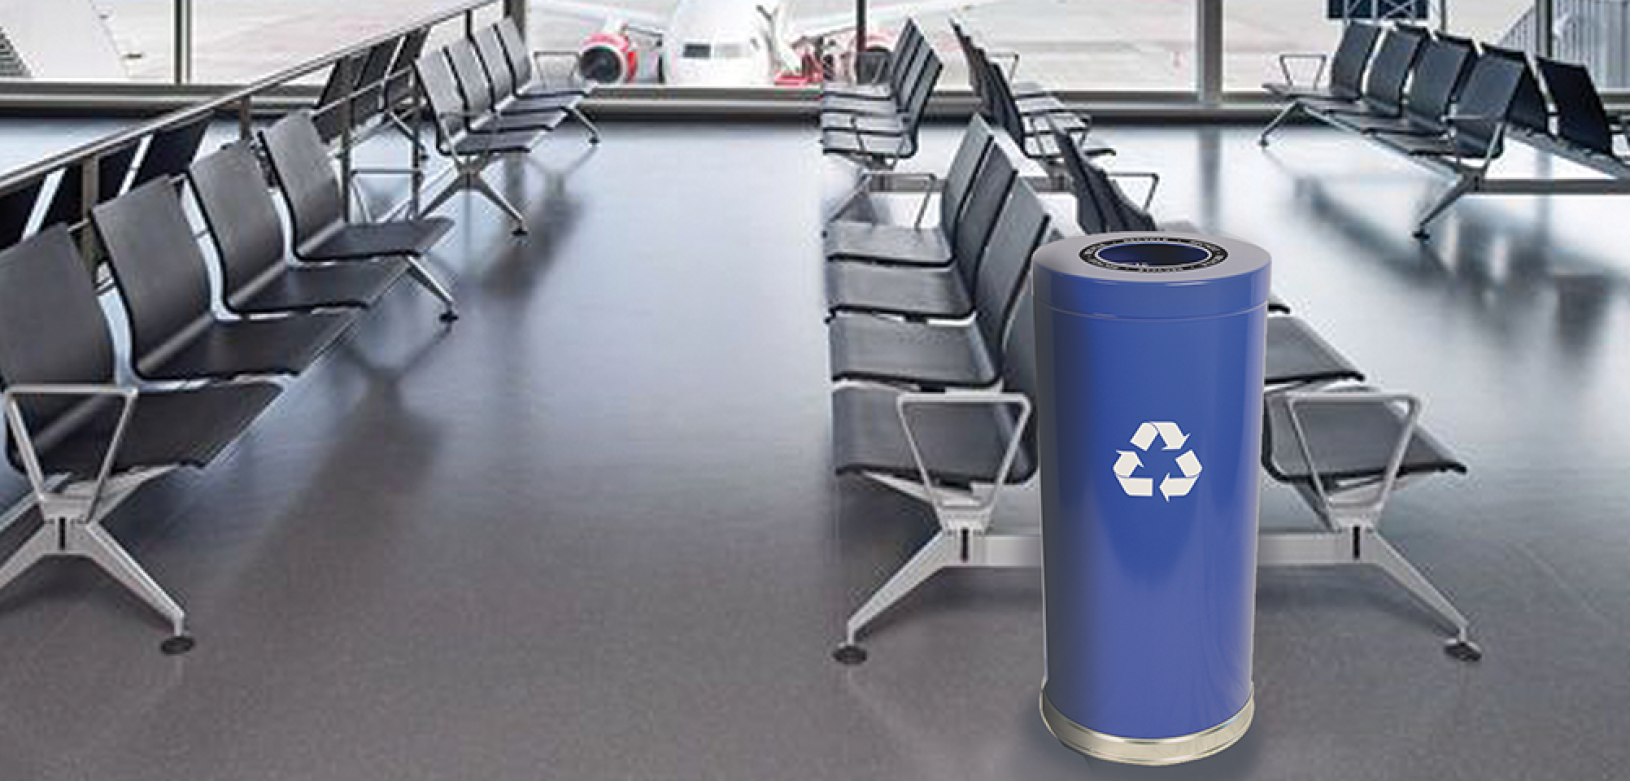 Witt Blue Emoti-Can Recycling Receptacles with Decal Indoor Environmental